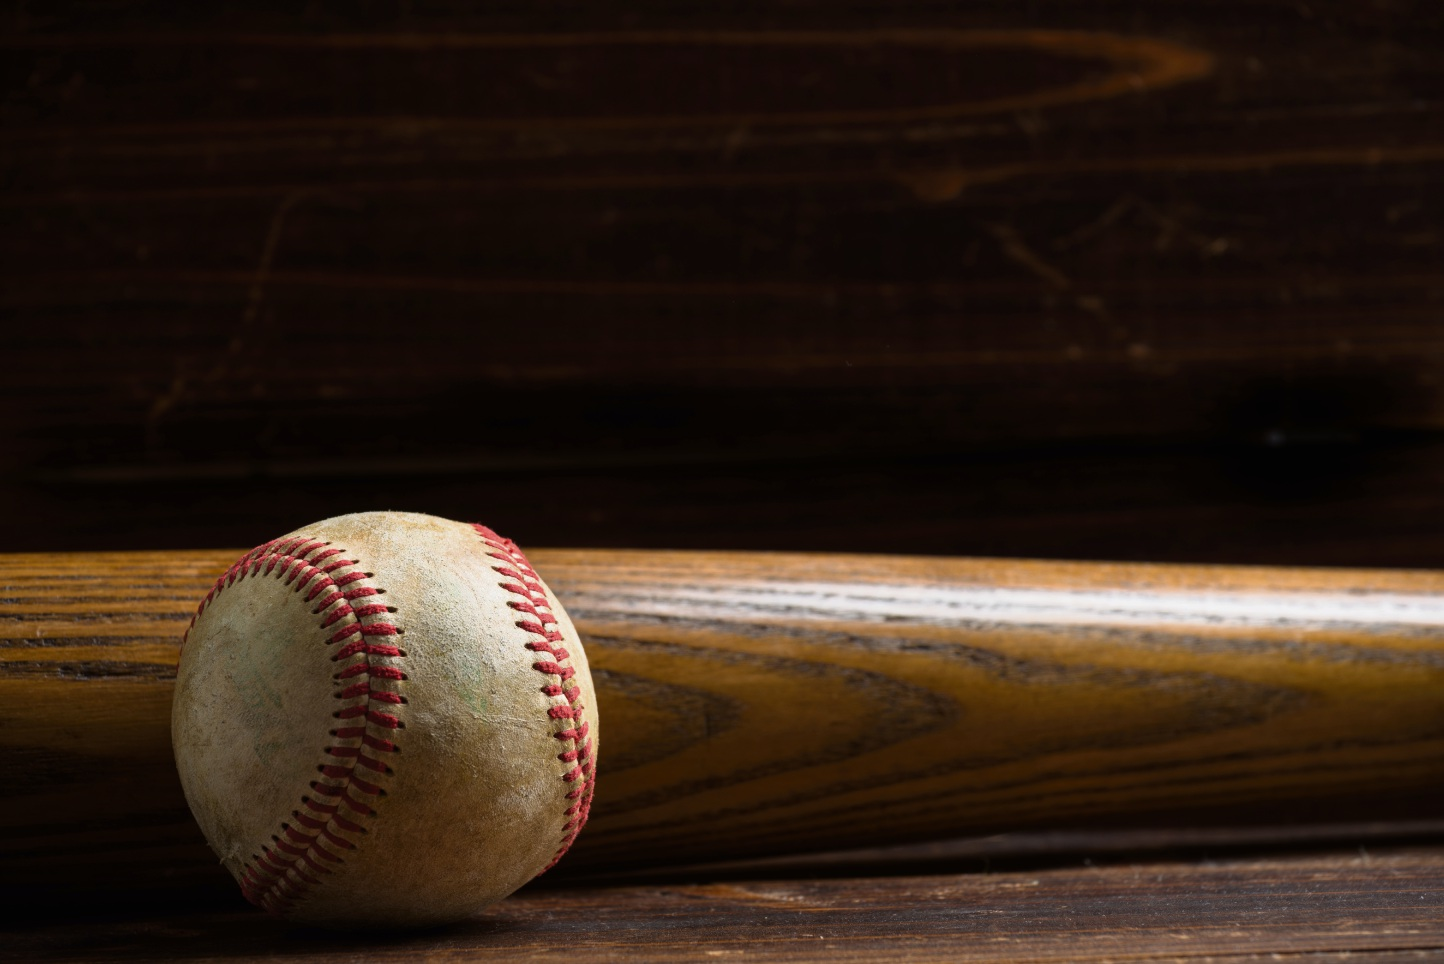 Baseball: Swan Districts hosting Back to Swans Day this Saturday